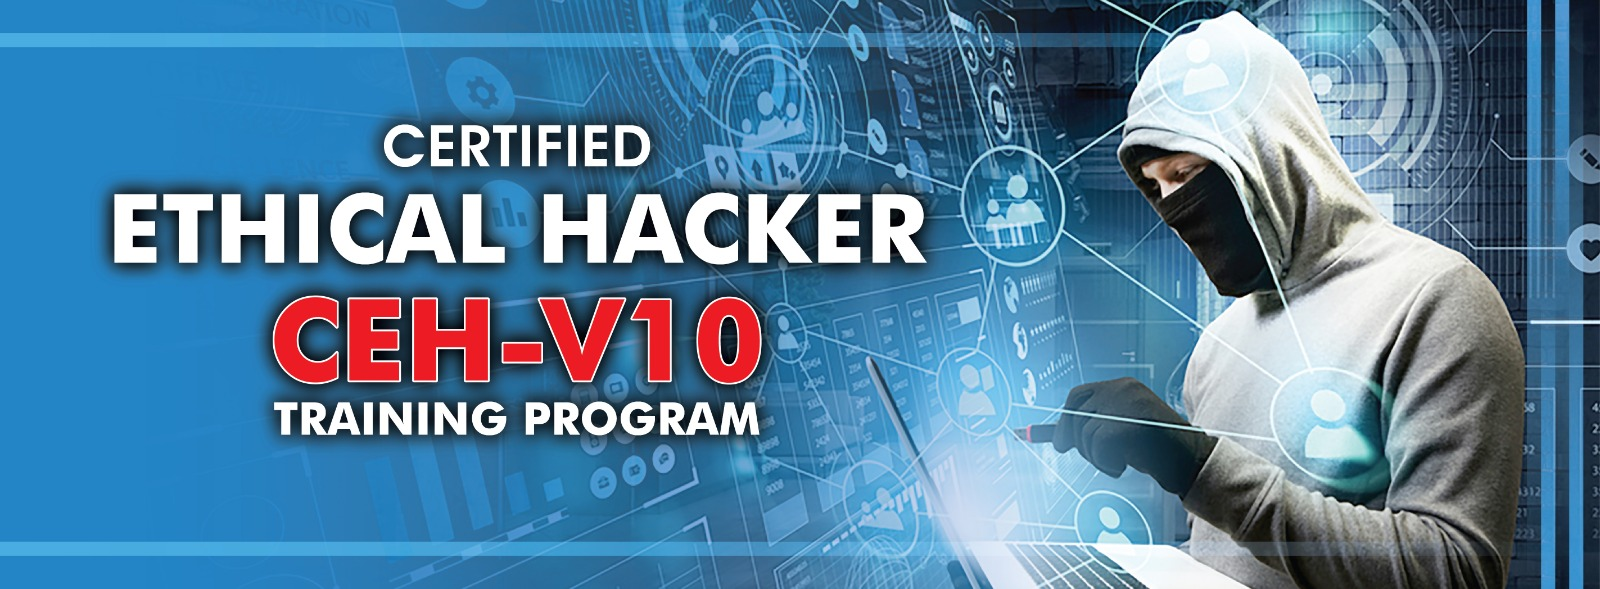 ETHICAL HACKING COURSE: THE RIGHT STEP TO SURPASS HACKERS